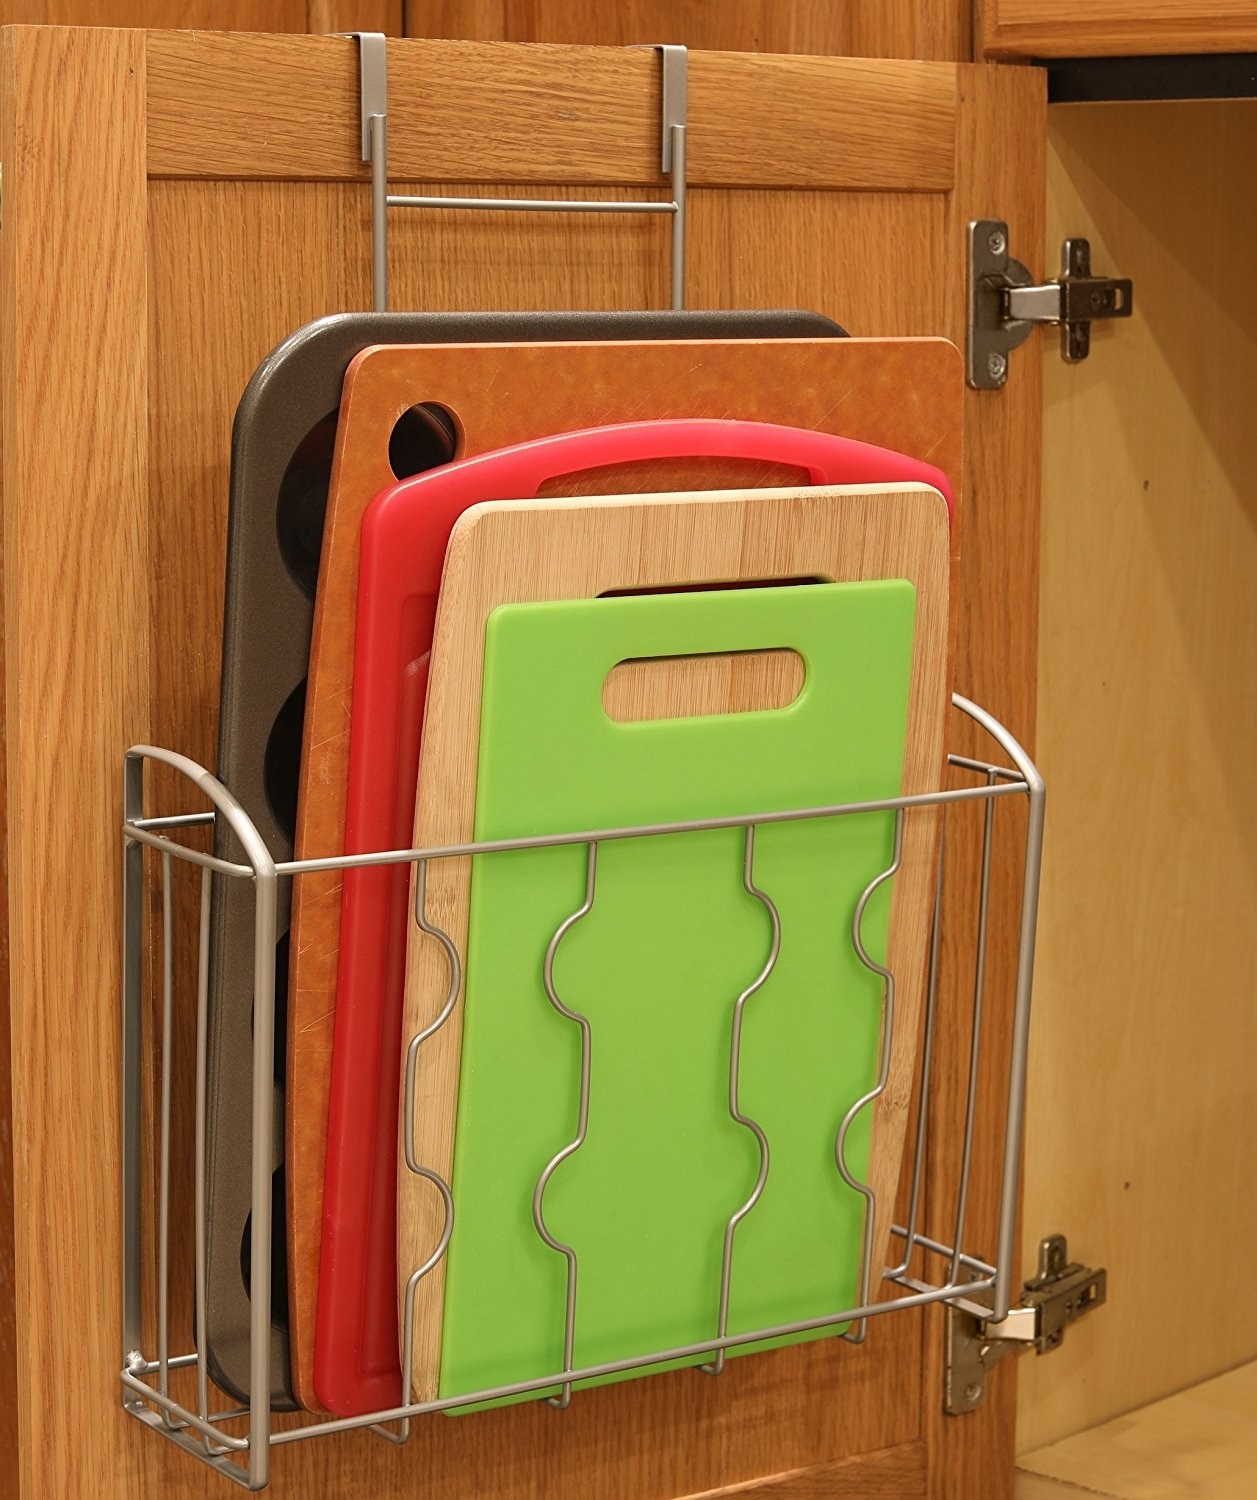 The silver wire rack hanging on a cabinet door with cutting boards and a muffin tray in it.